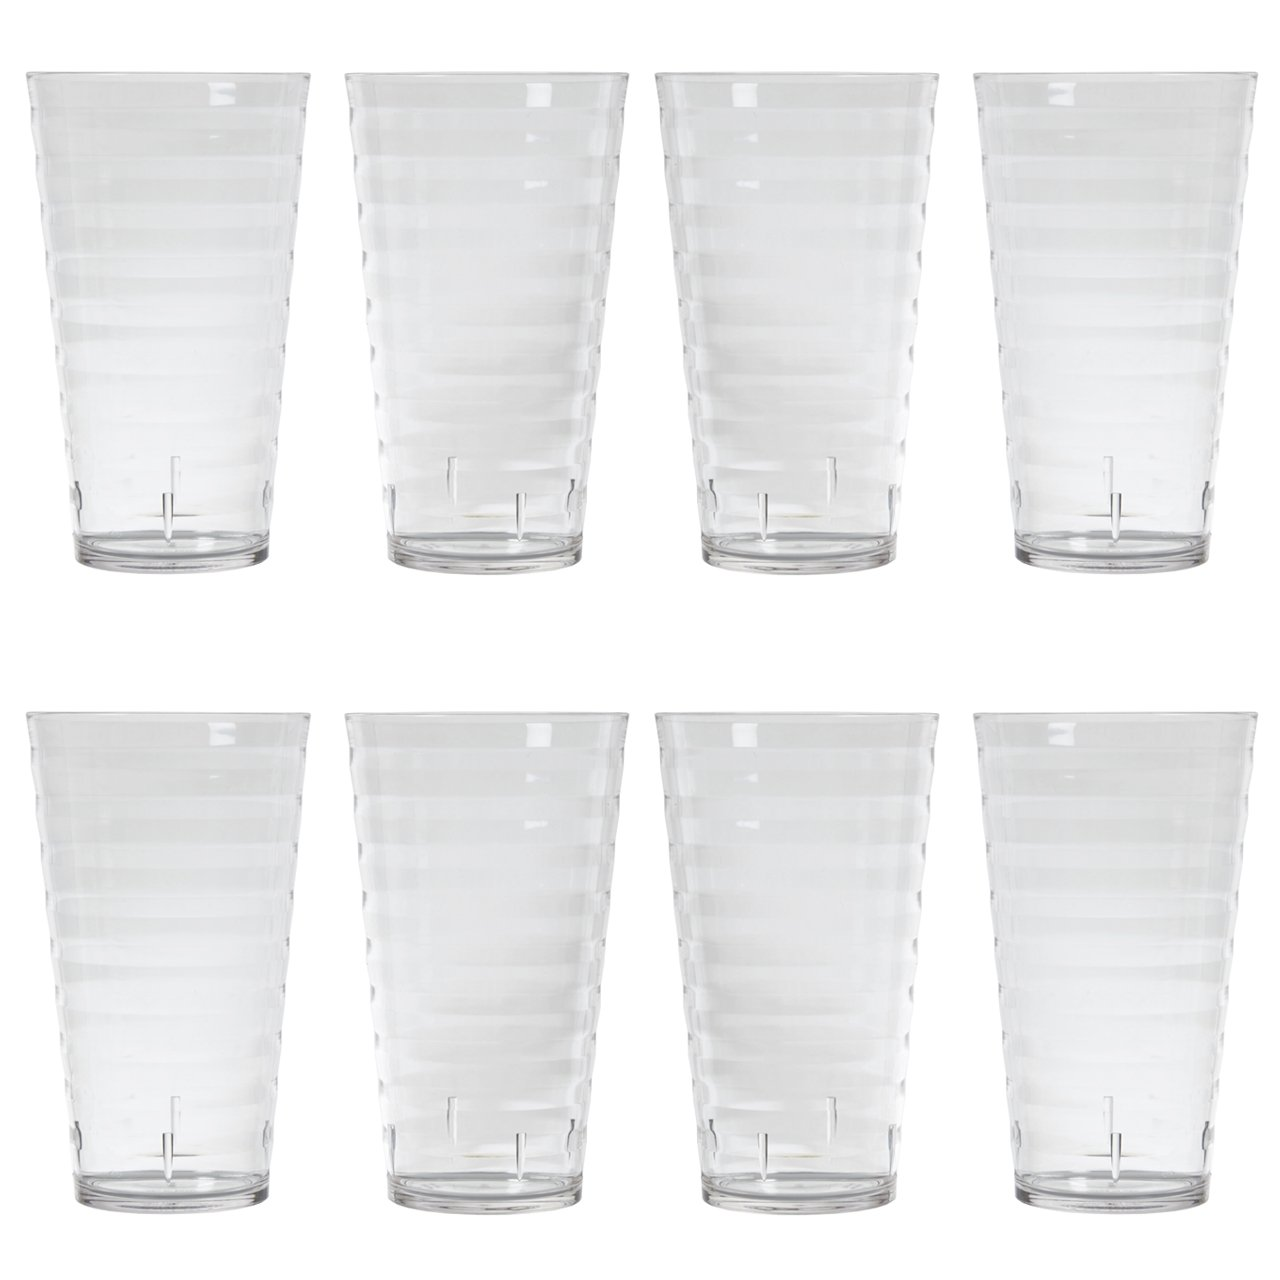 Splash 18-ounce Clear Plastic Tumblers | set of 8 by US Acrylic